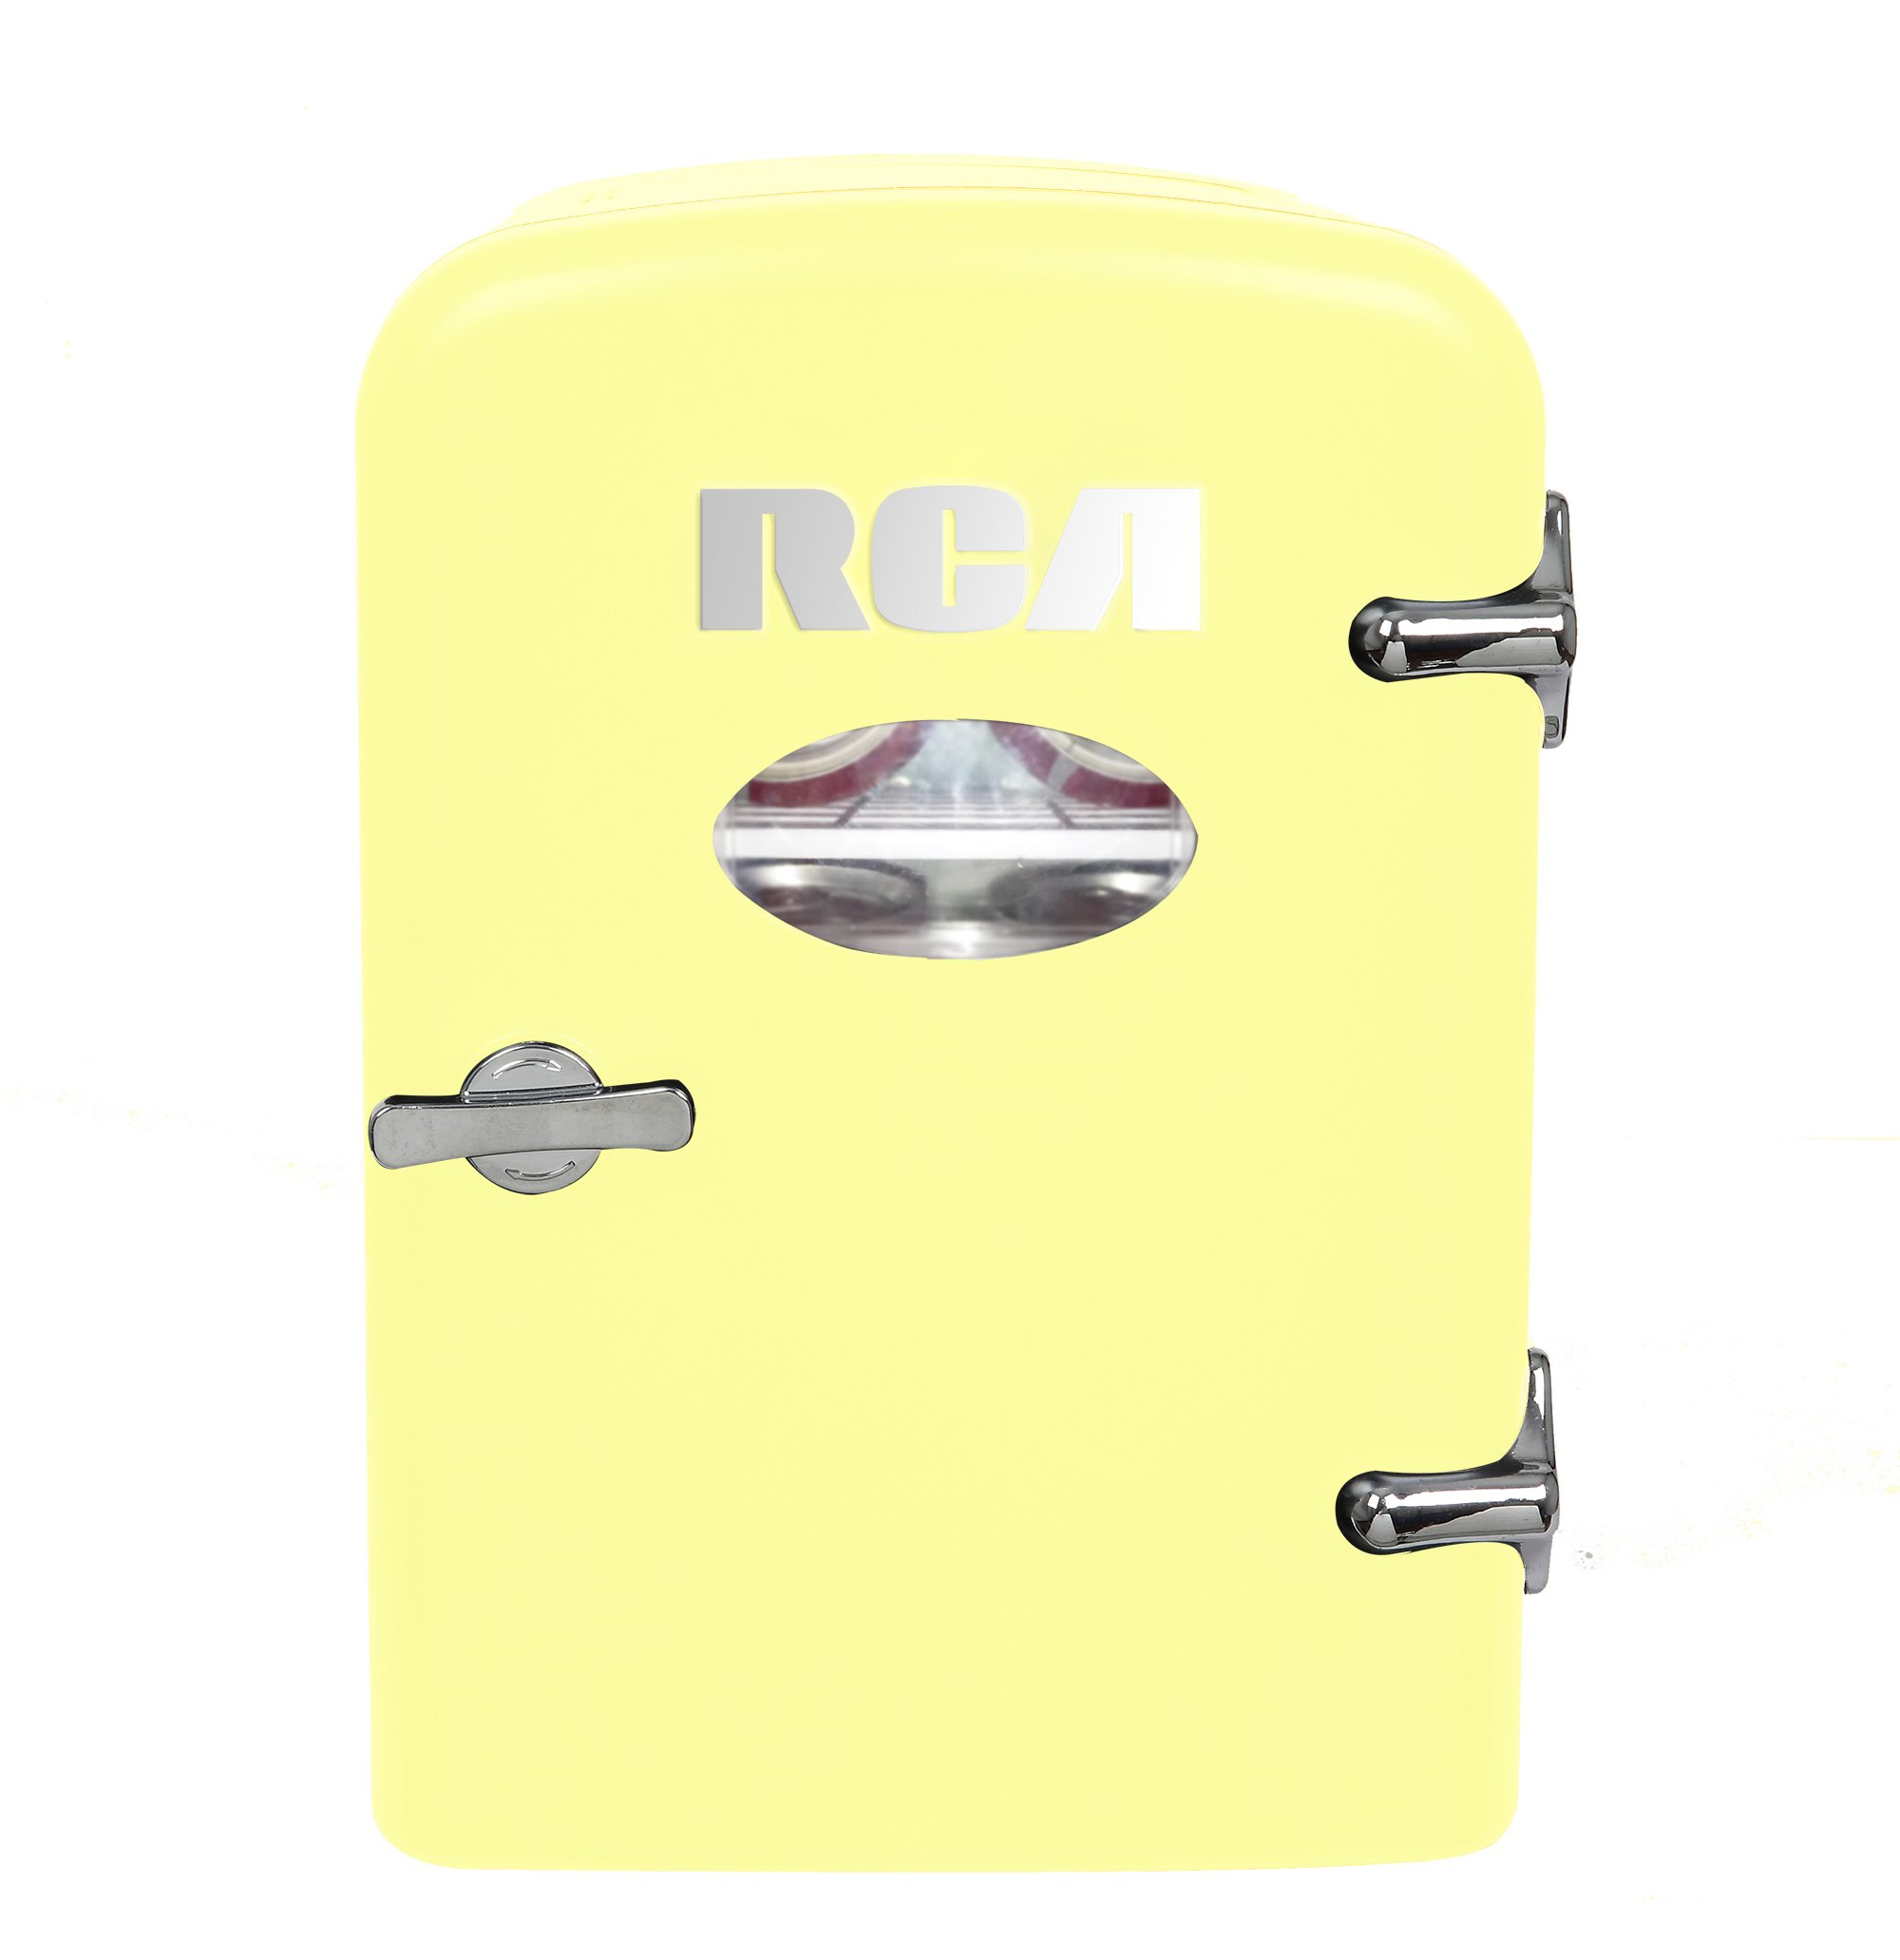 RCA Mini Compact Beverage Refrigerator, Yellow, Great for keeping office lunch and a couple drinks cool! by RCA (Image #1)